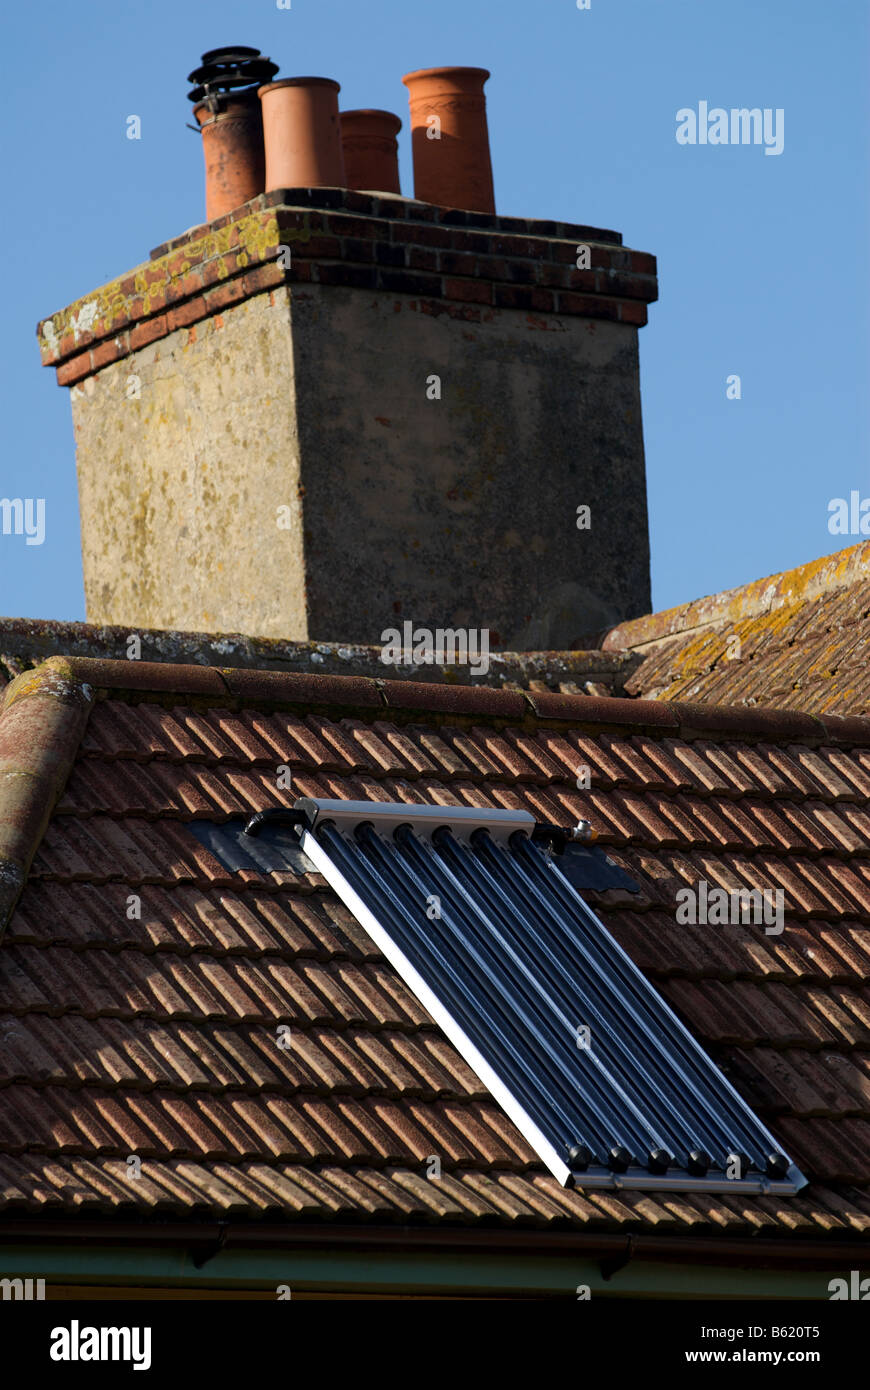 Solar evacuated tubes to heat the water of a house in Bawdsey, Suffolk, UK. - Stock Image